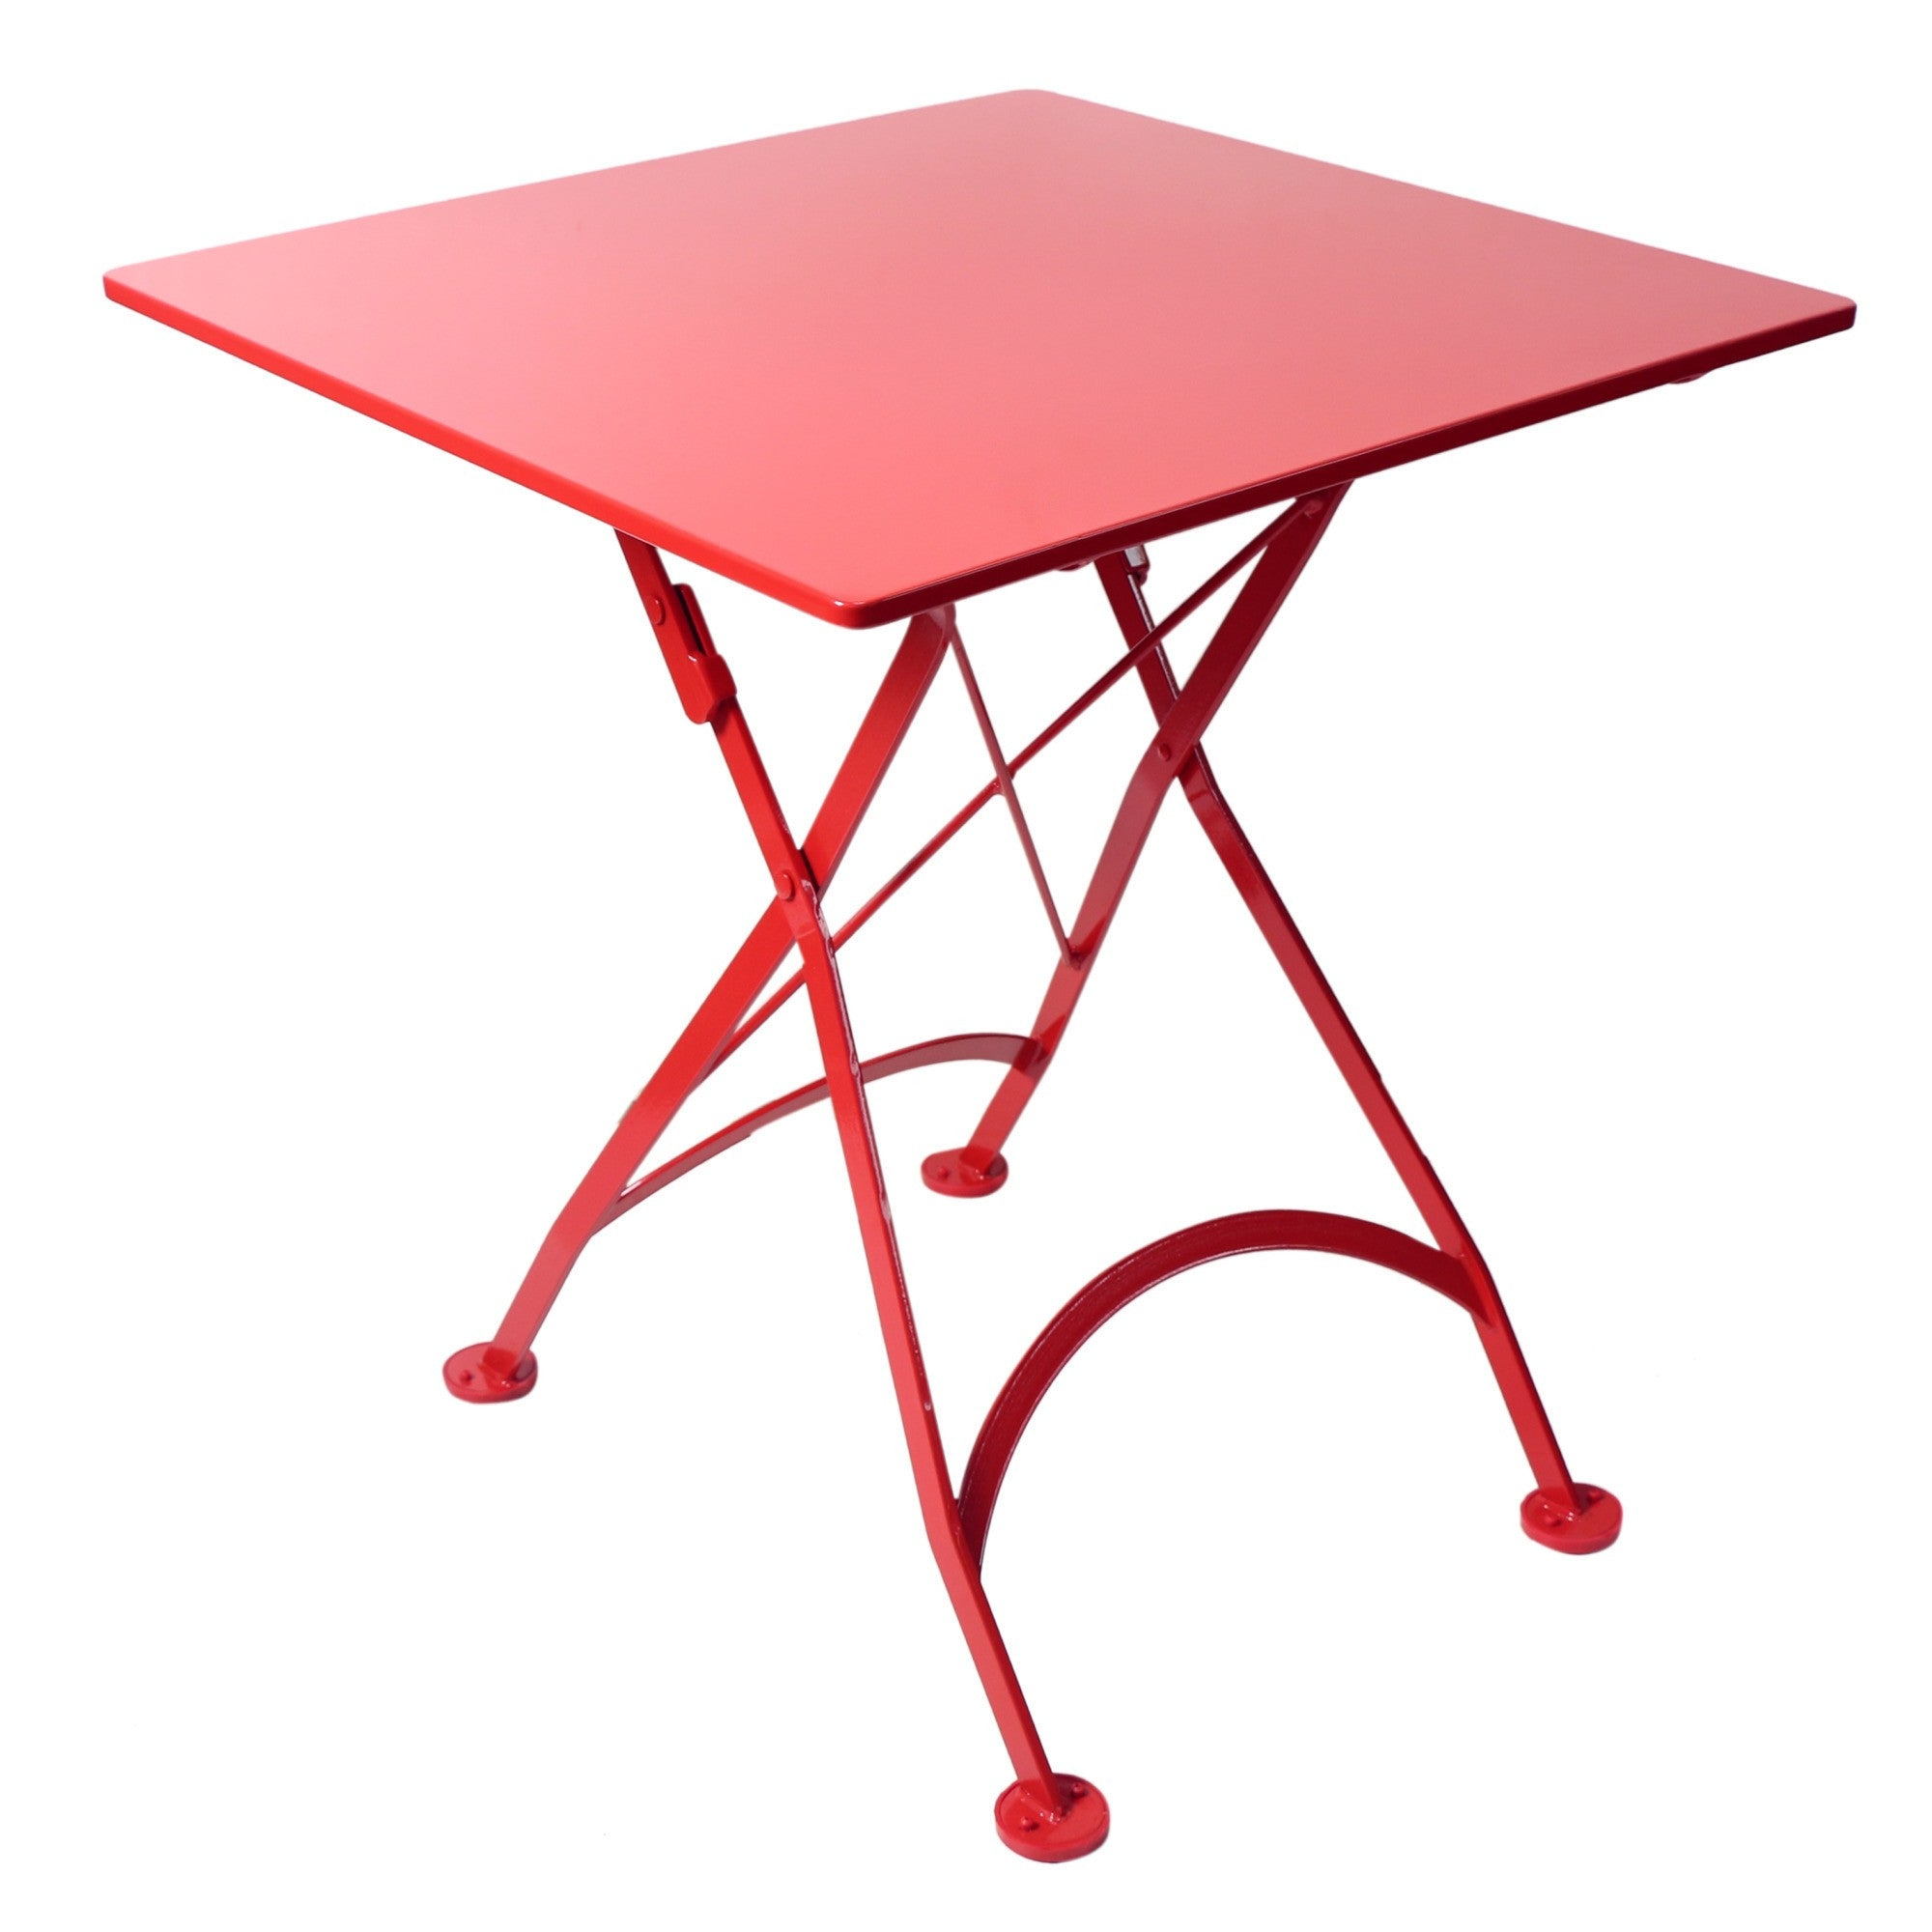 Square folding tables - 28 Inch Square European Folding Steel Metal Bistro Table